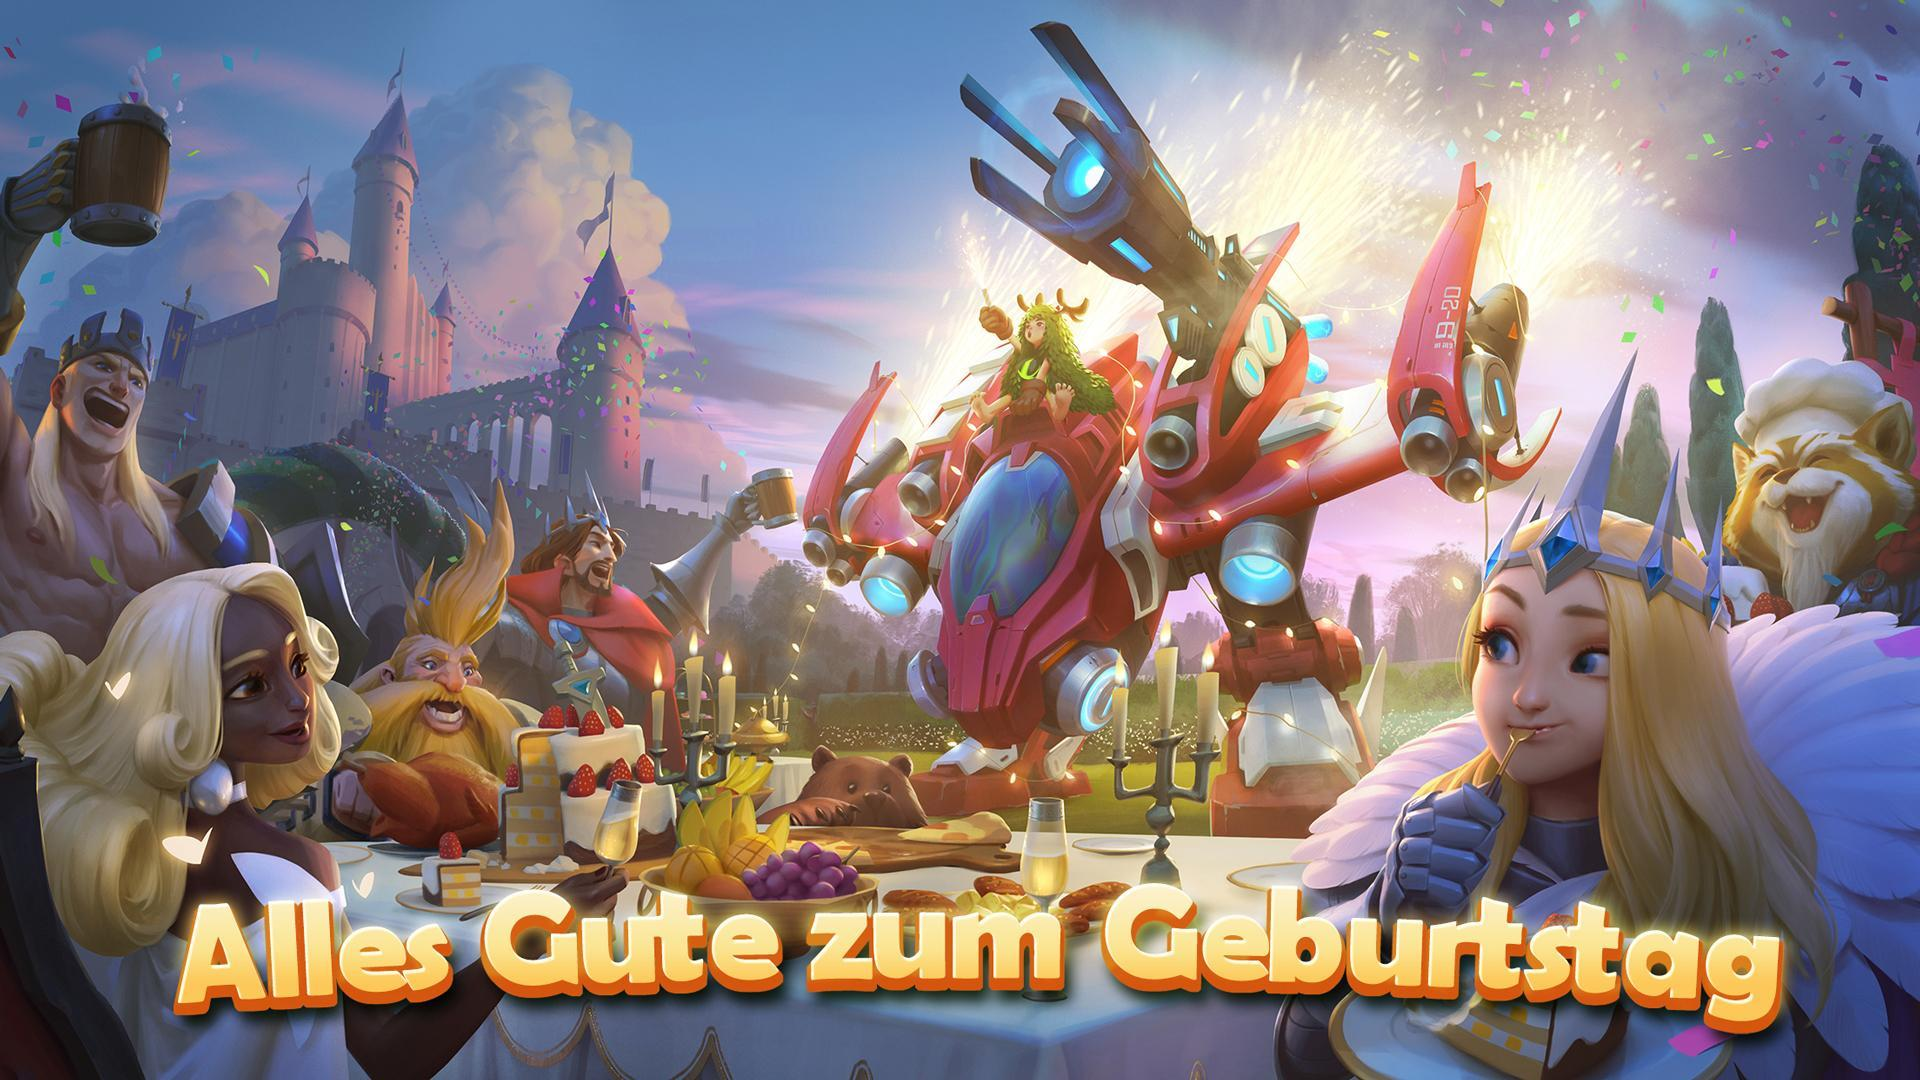 Download Art of Conquest apk 1.23.00 - Free Strategy GAME ...